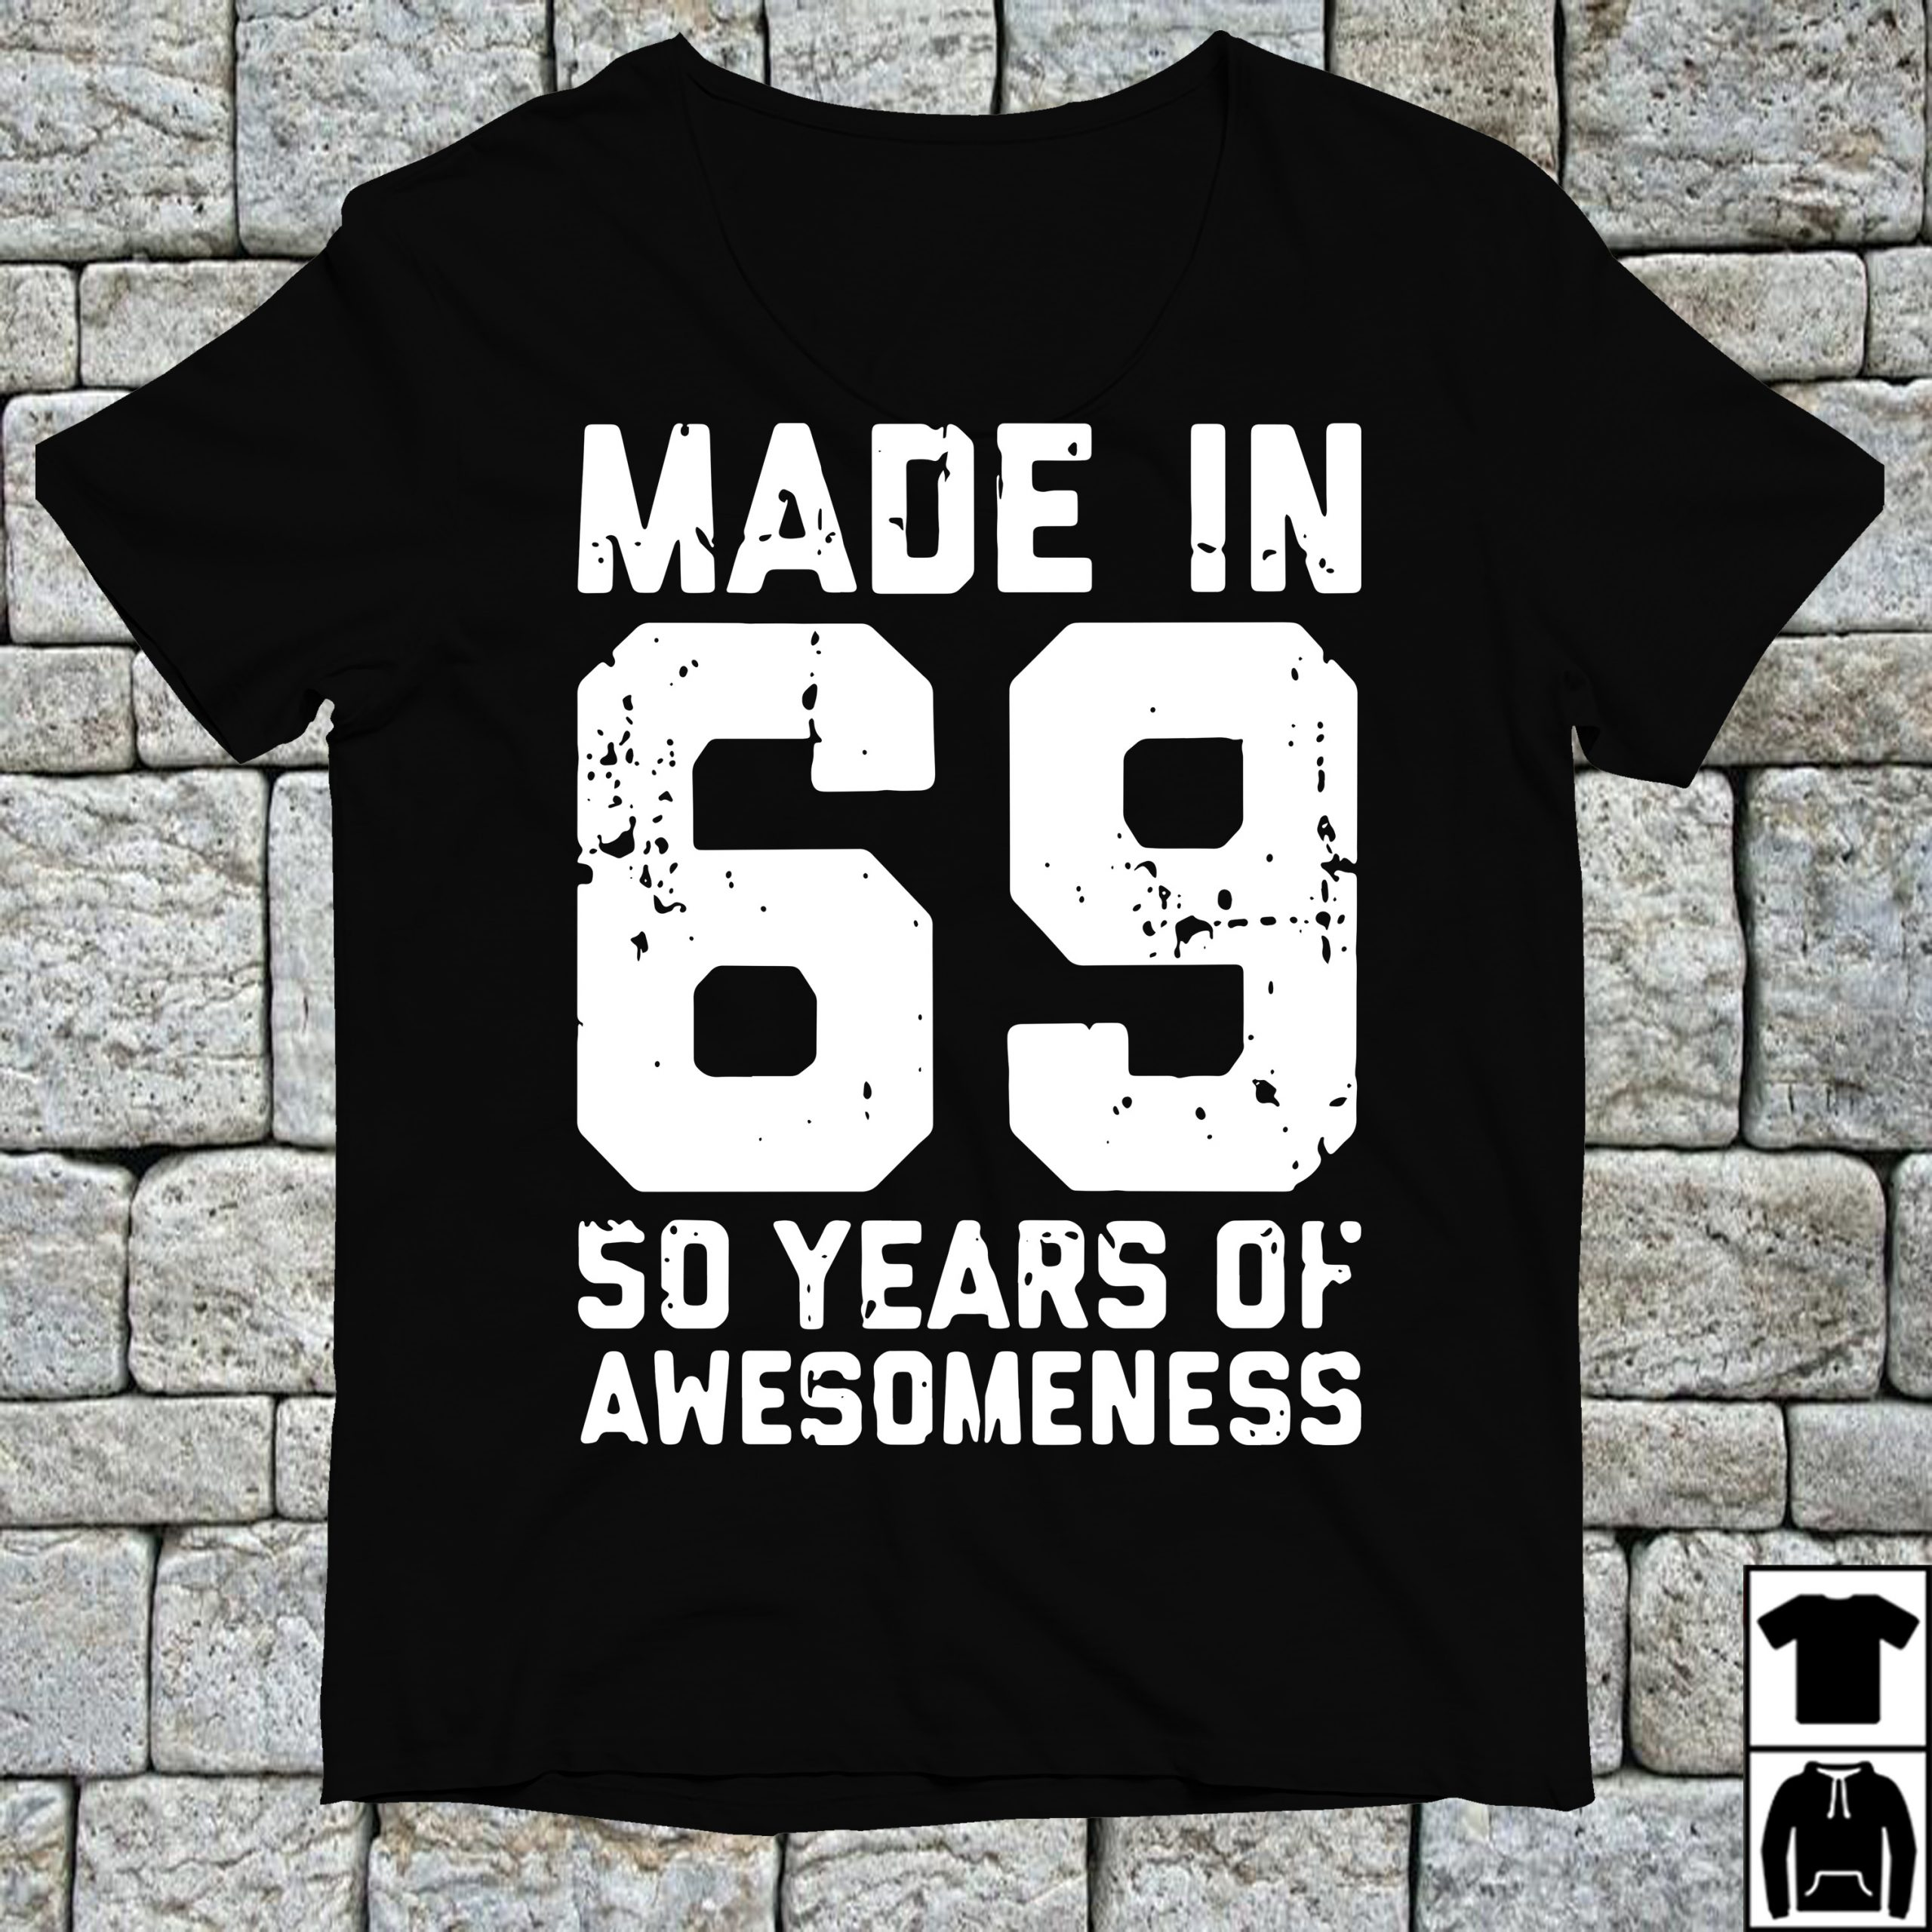 Made in 69 so years of awesomeness shirt